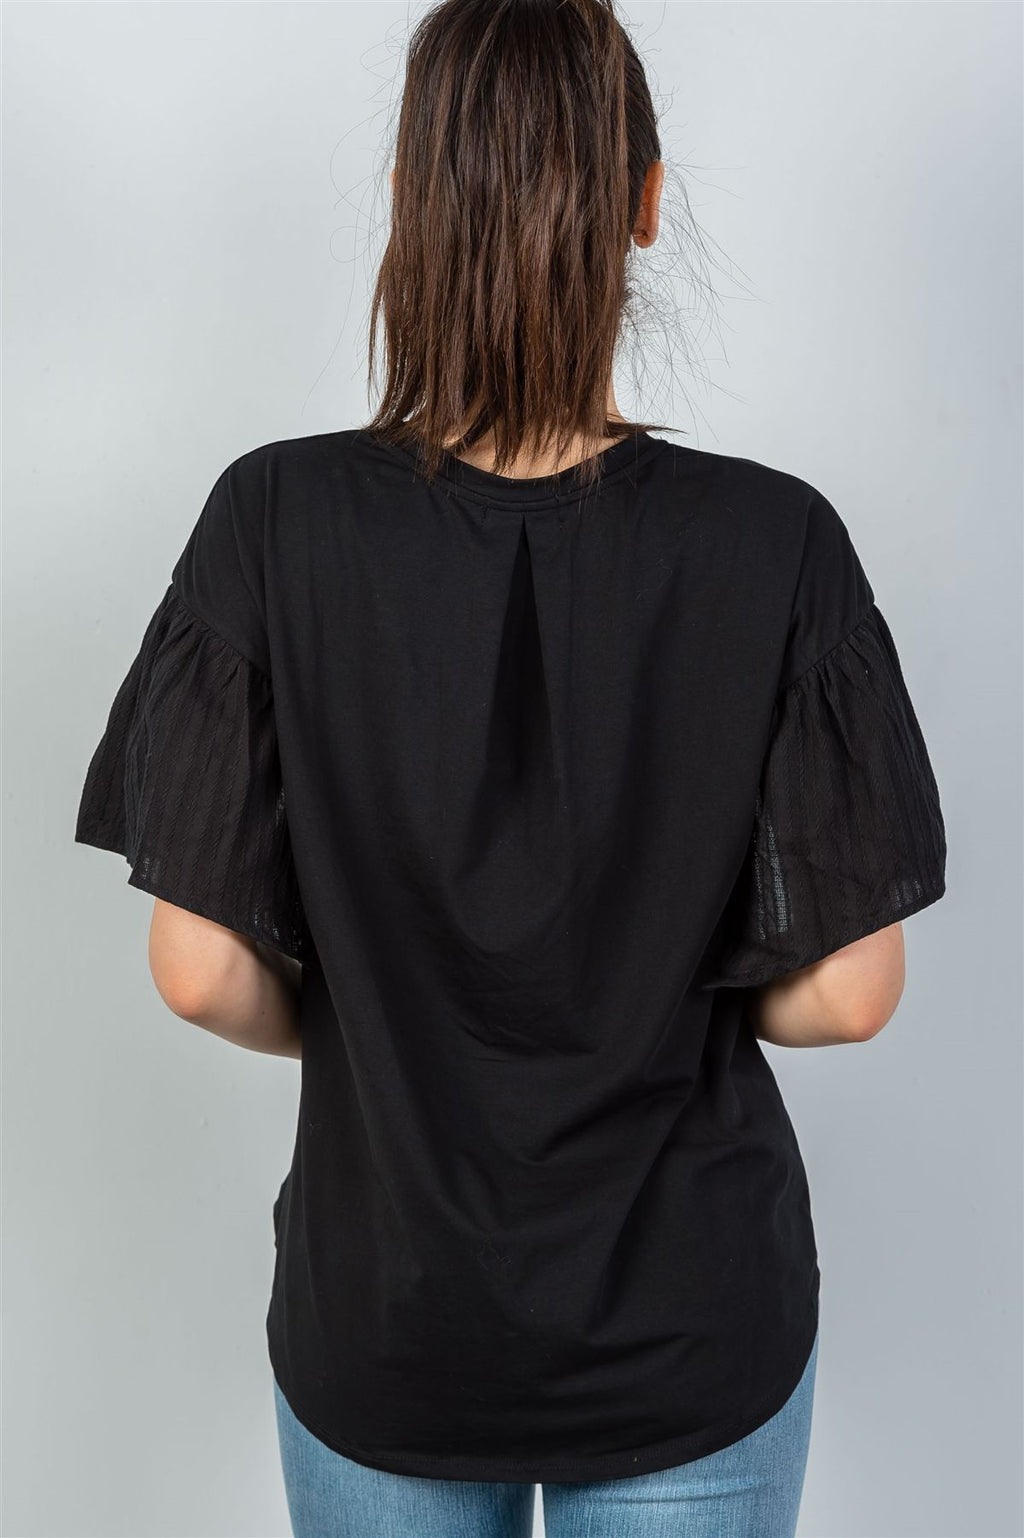 Ladies fashion black split short sleeve top